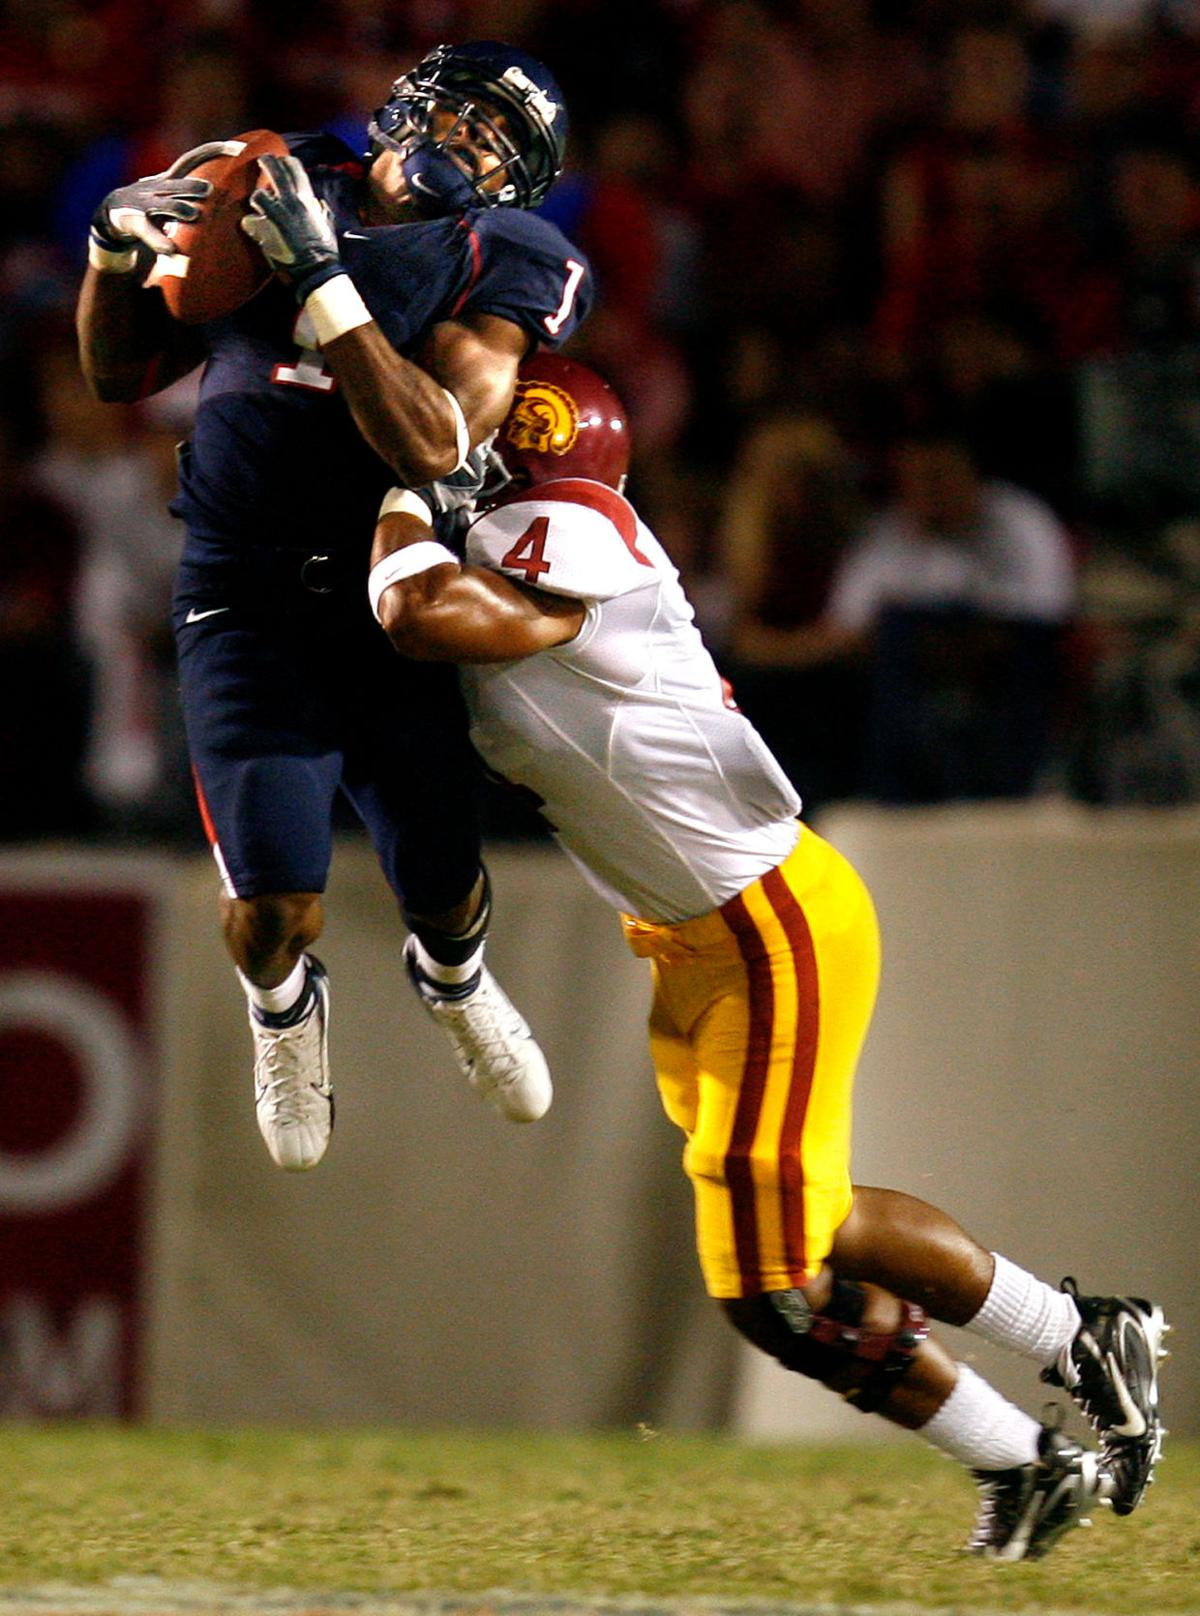 USC's Kevin Ellison puts the hit on Arizona receiver Syndric Steptoe in the third quater in Tucson, Arizona Saturday. Steptoe held on to the catch for a gain.